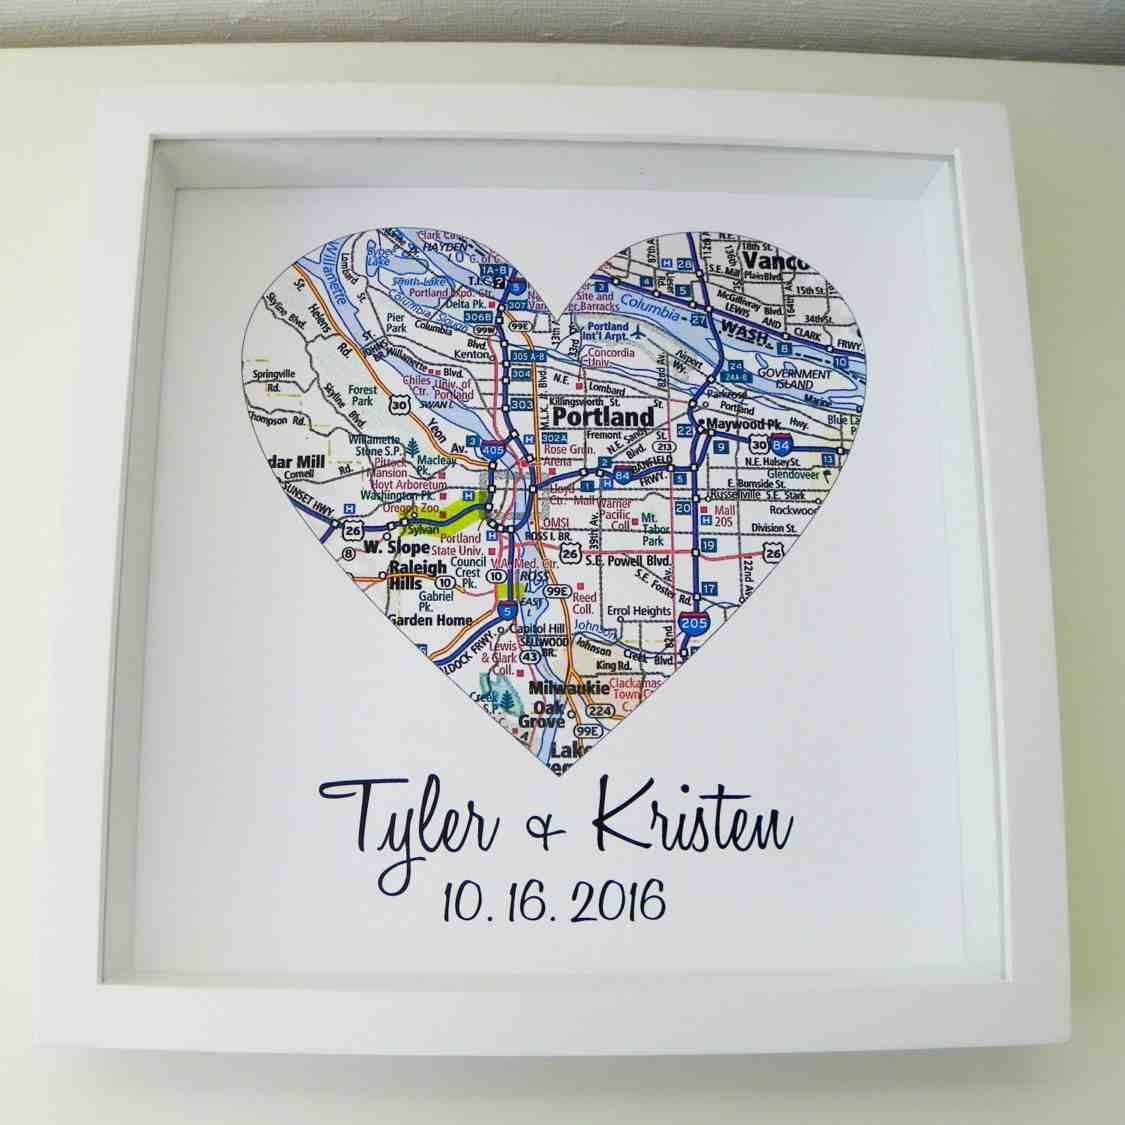 First House Gift Ideas Personalized Wedding Gift Ideas For Bride And Groom